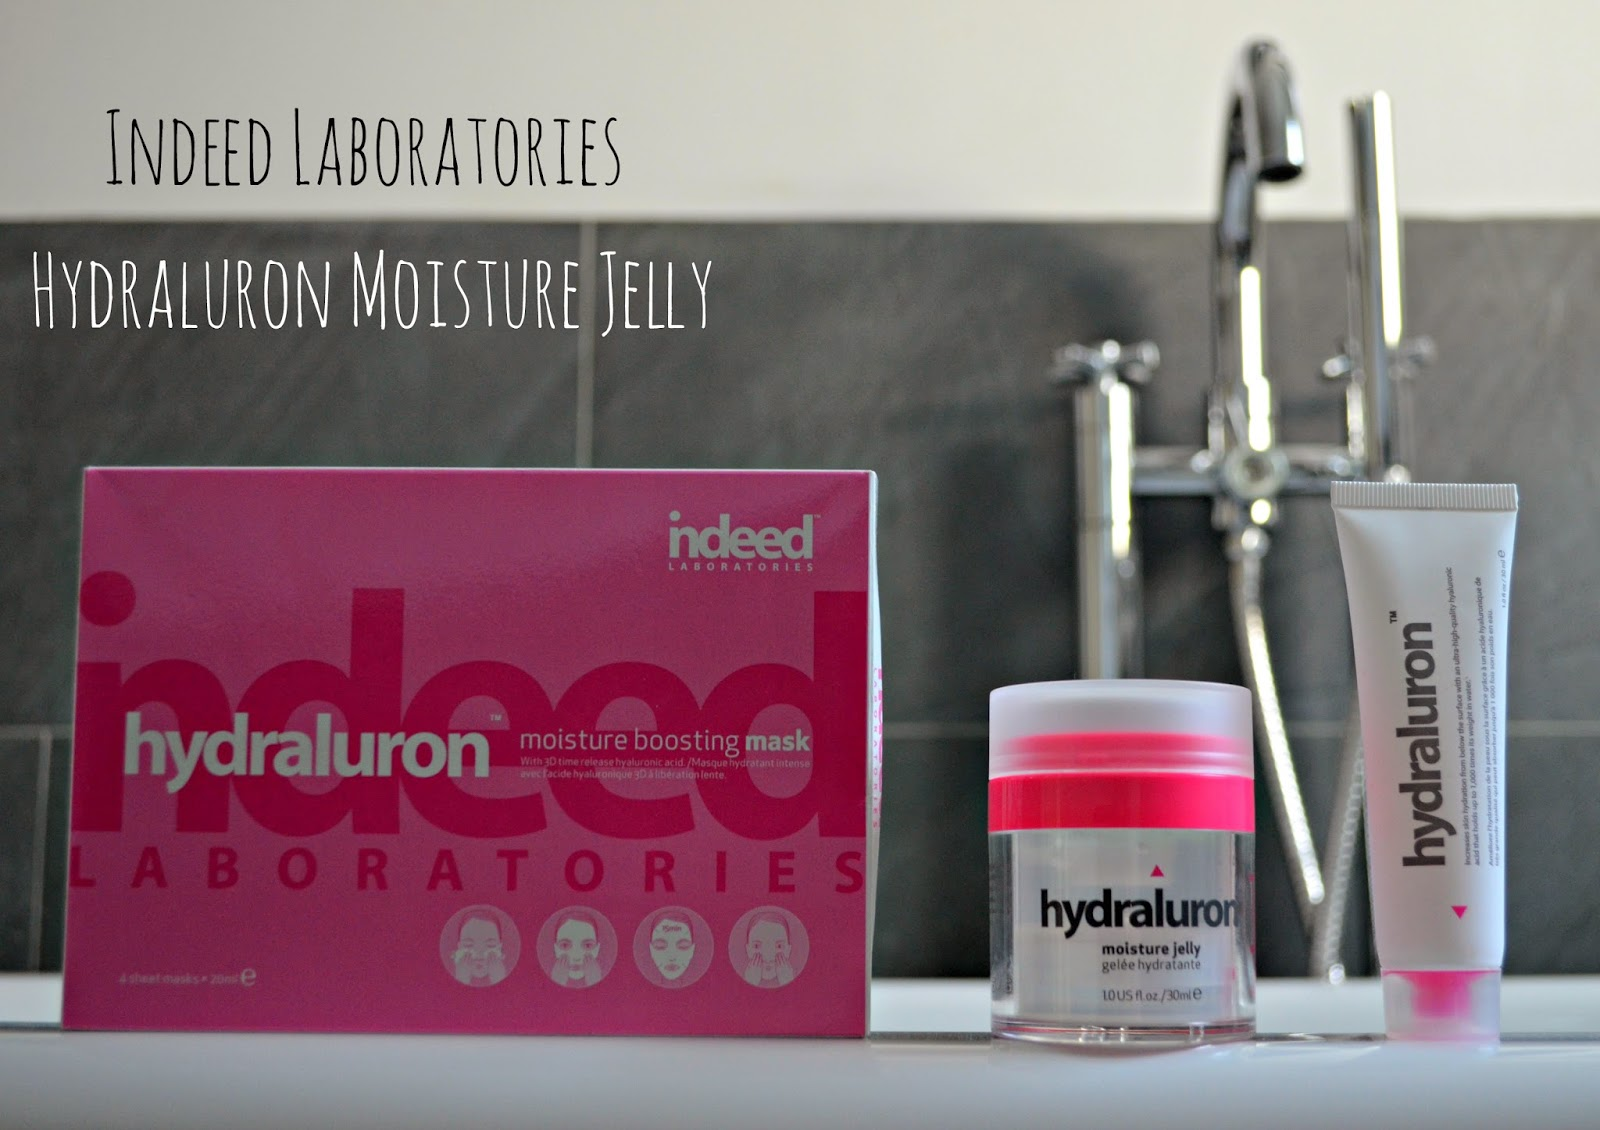 Indeed Laboratories hydraluron moisture jelly review